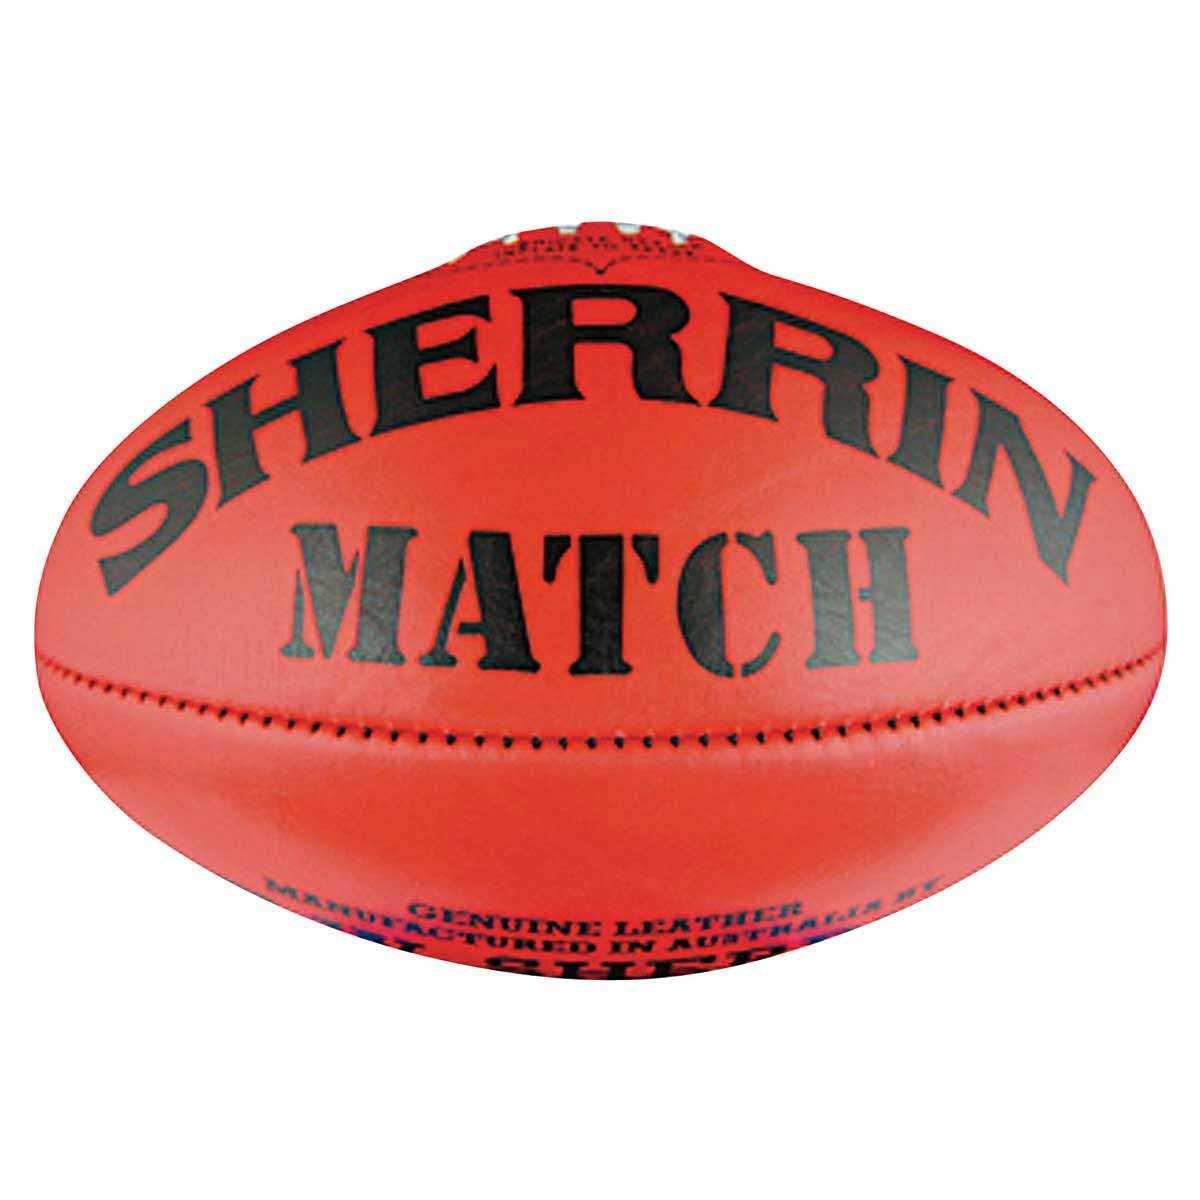 Sherrin match australian rules. Ball clipart footy